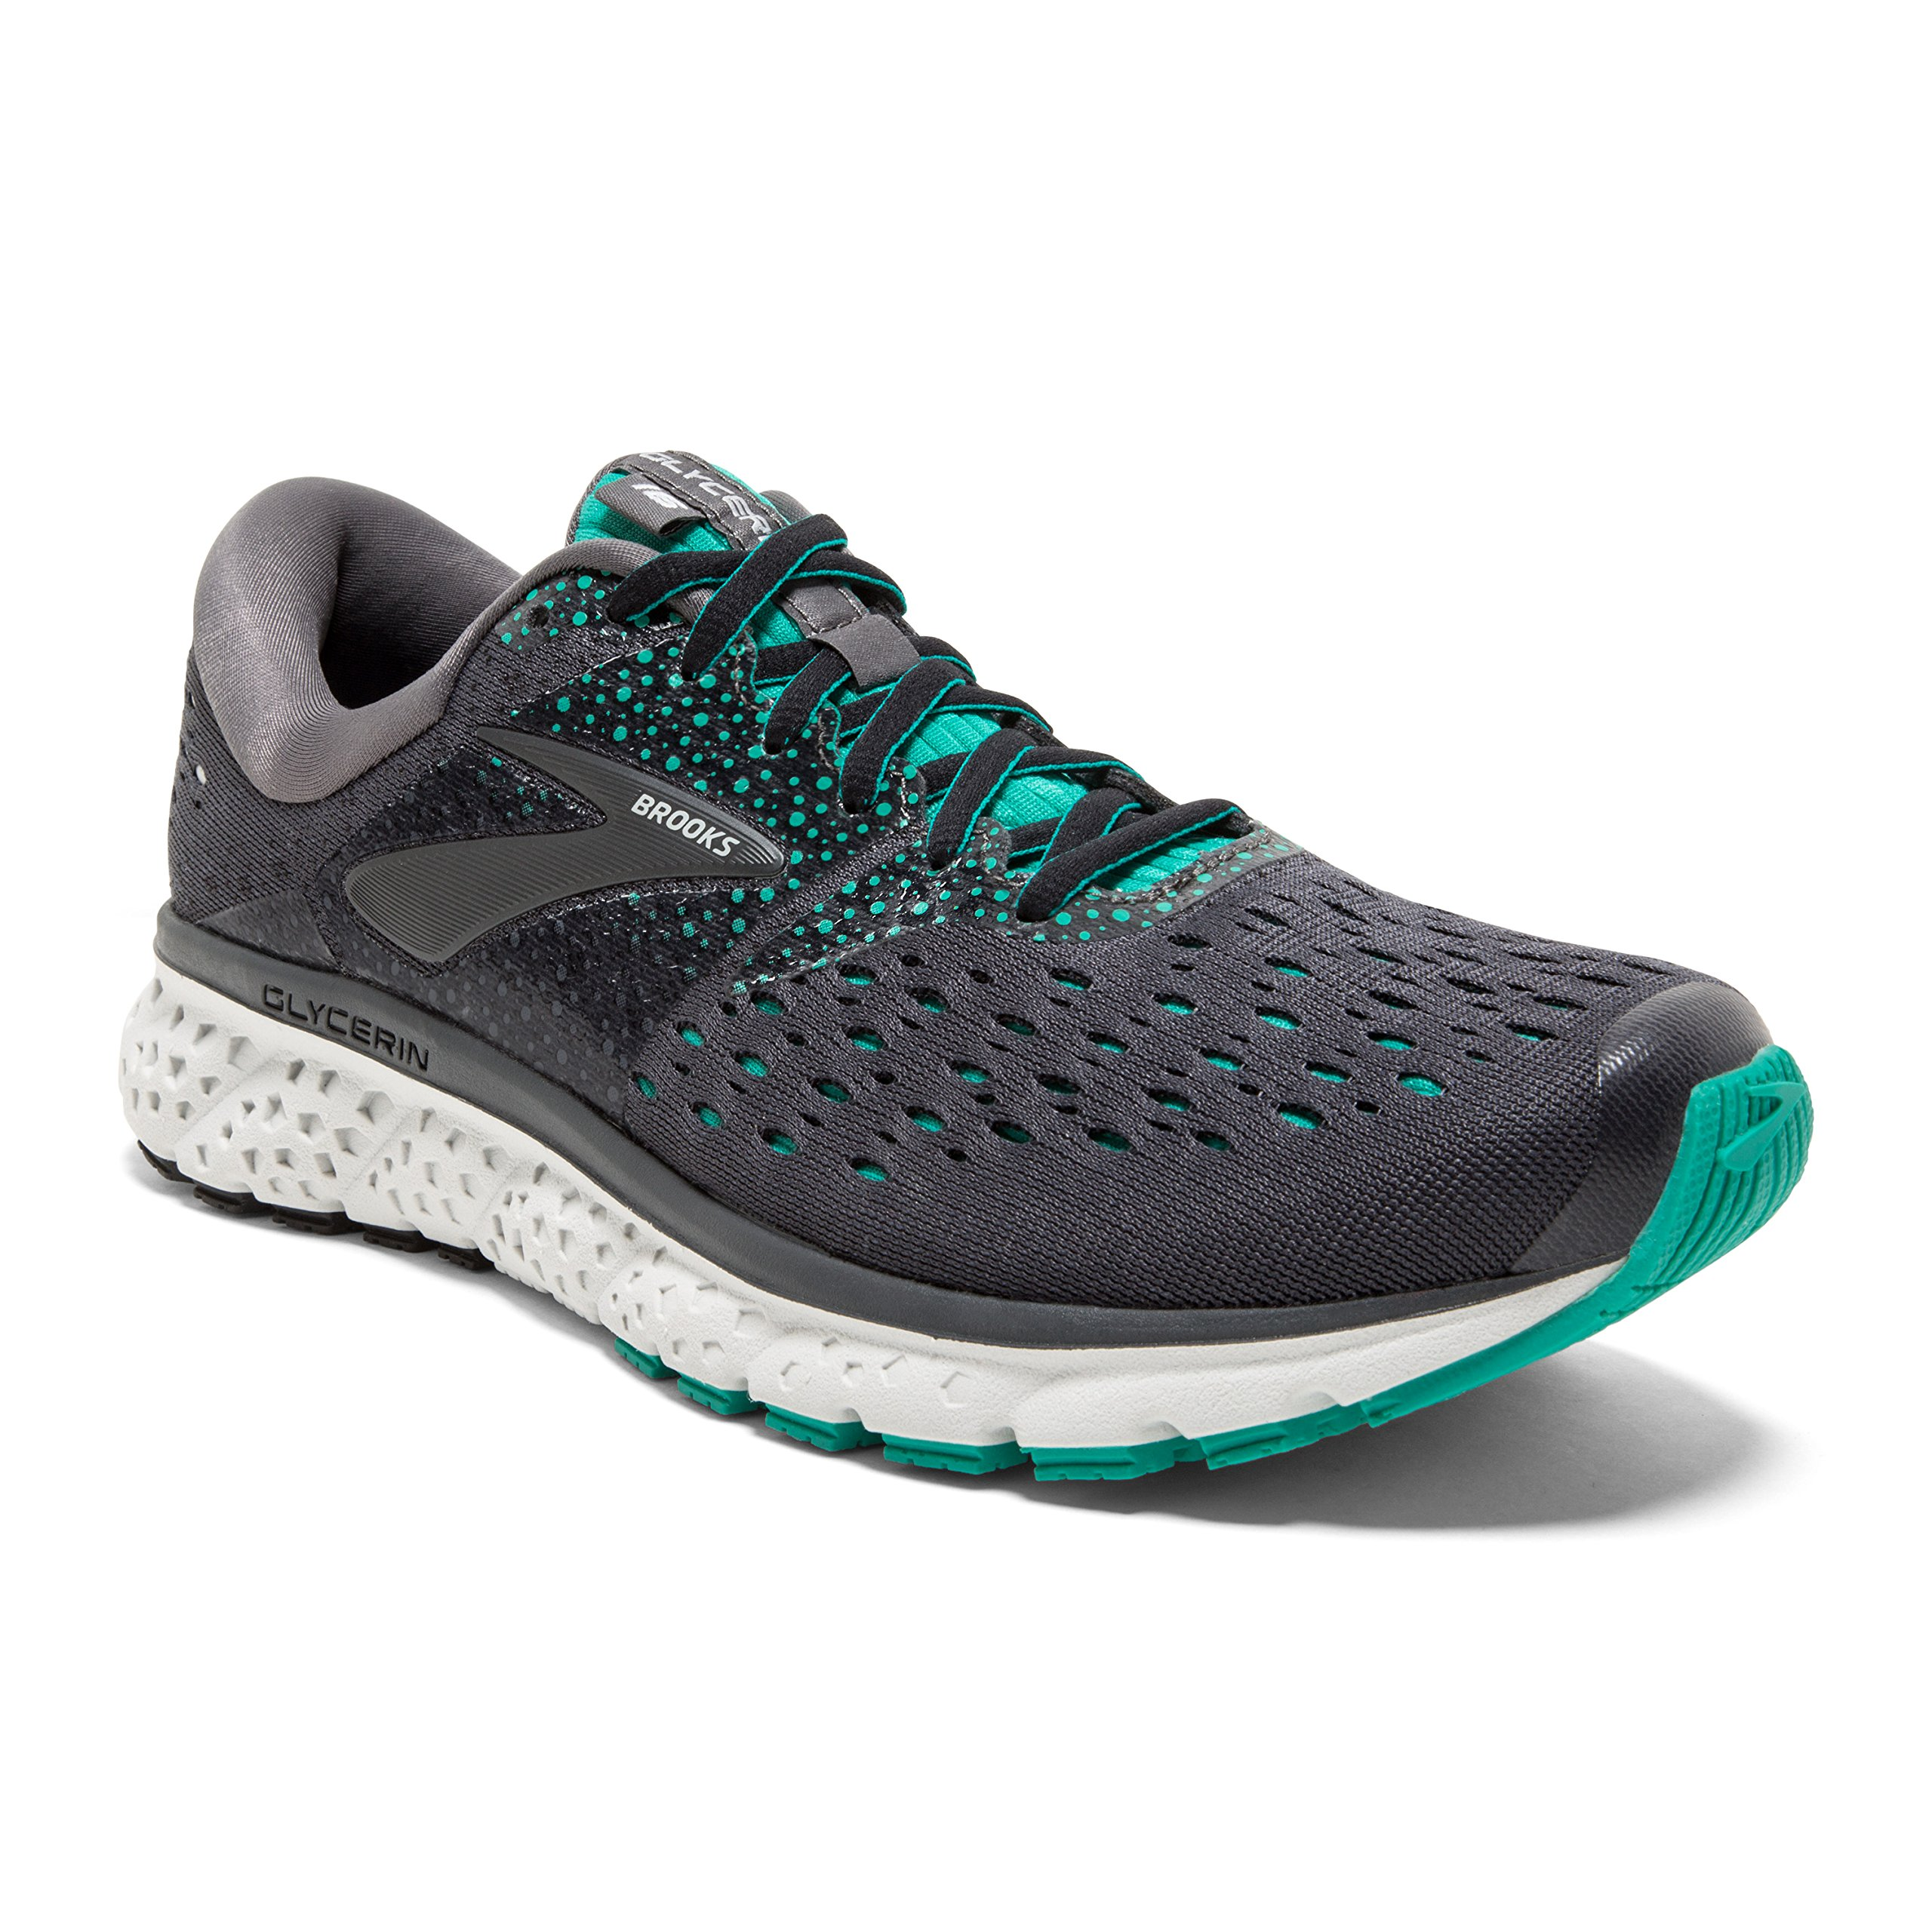 Brooks Womens Glycerin 16 - Ebony/Green/Black - D - 12.0 by Brooks